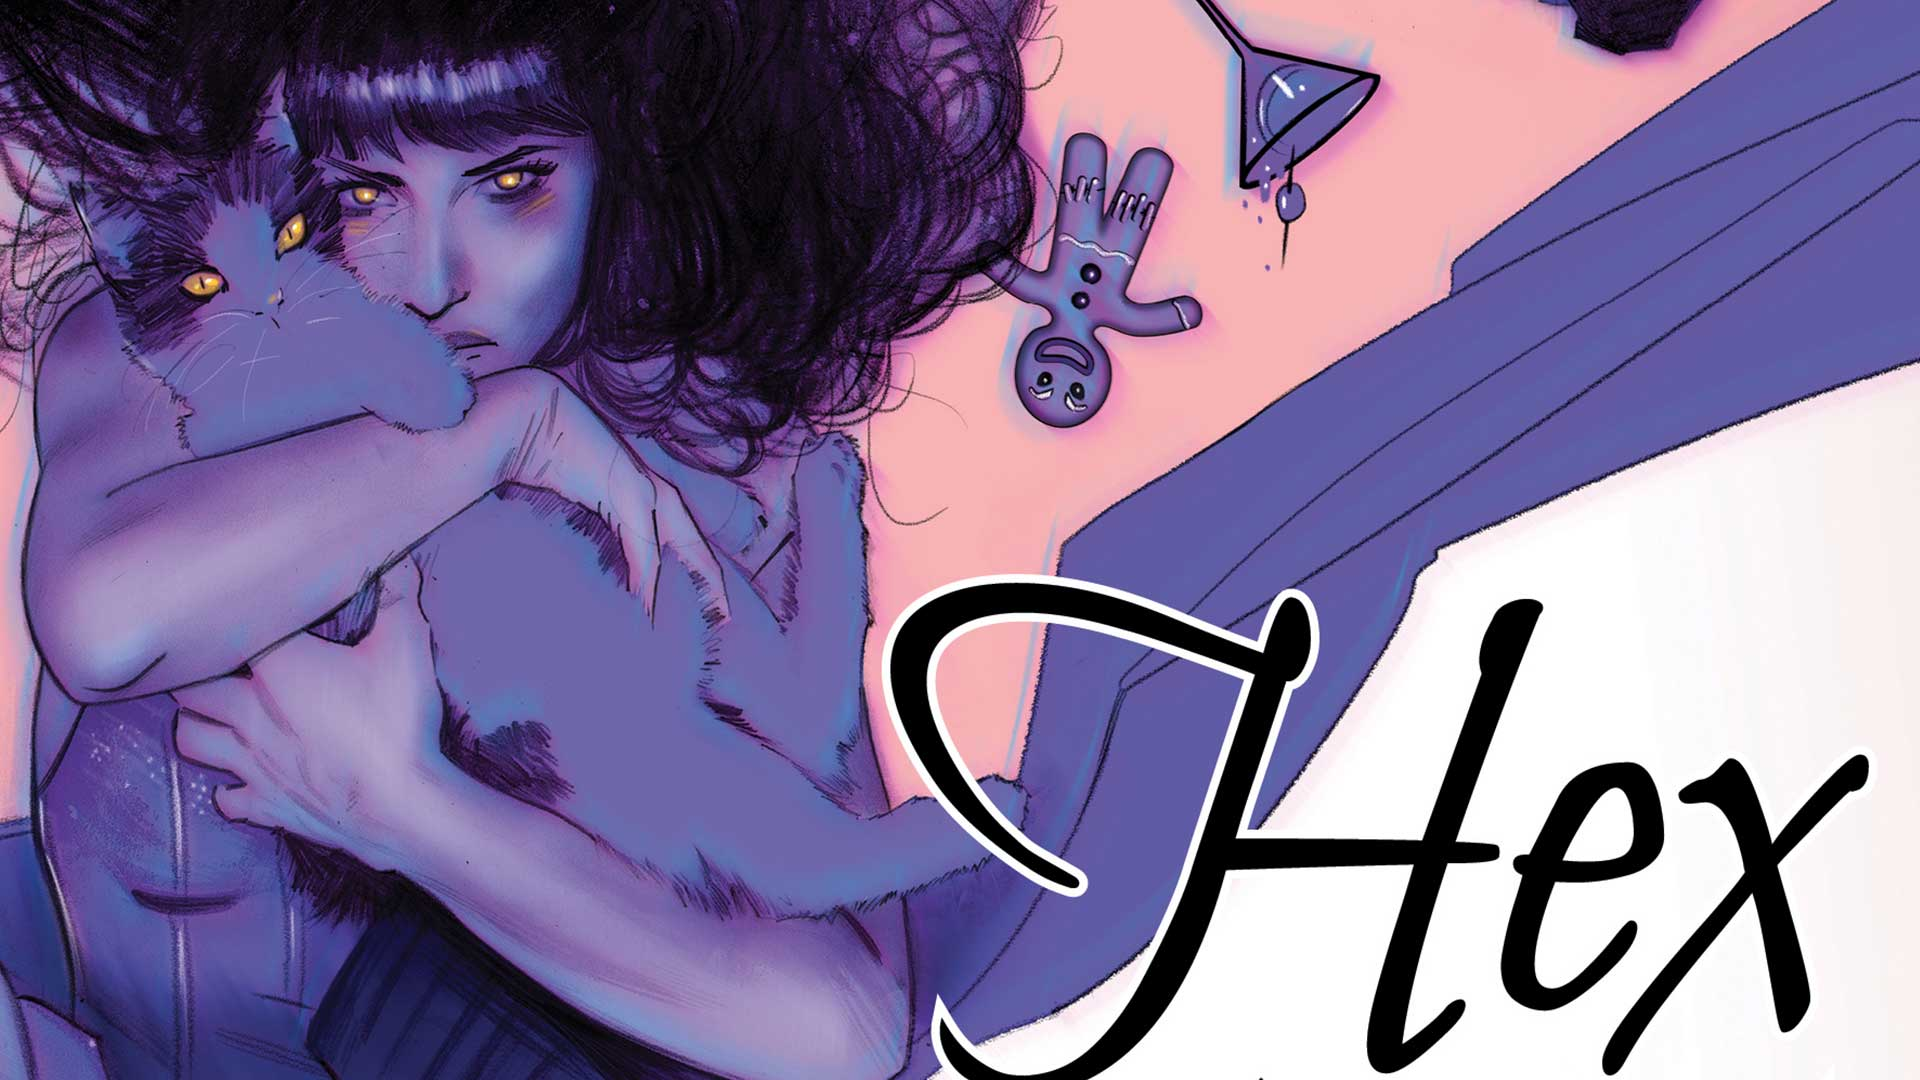 Hex Wives #5 review: And the walls come tumbling down